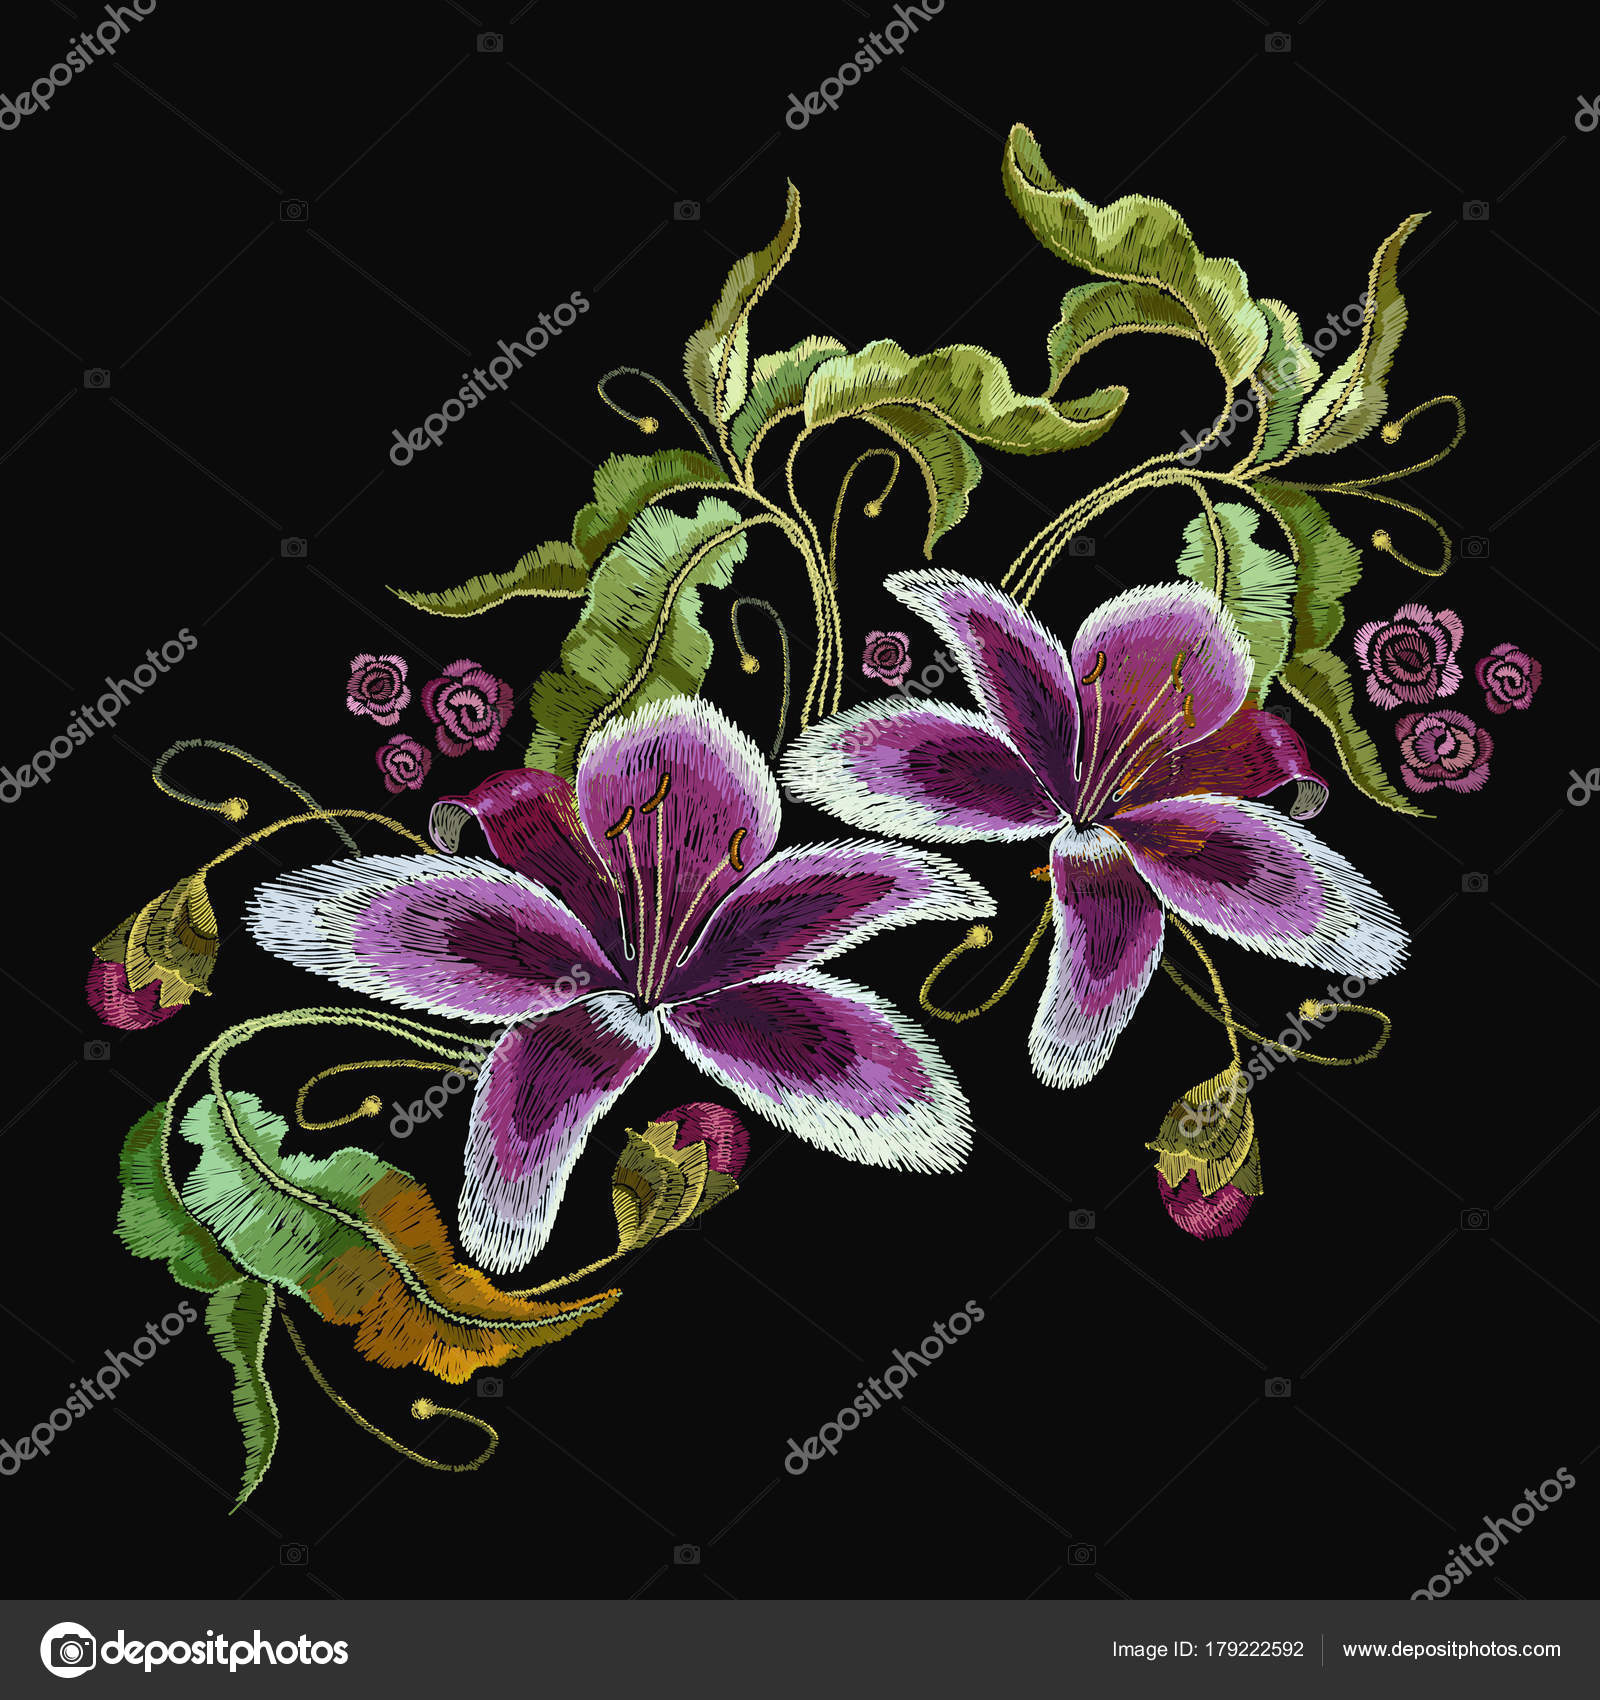 Embroidery tiger lily flowers orchids stock vector matriyoshka embroidery tiger lily flowers orchids stock vector izmirmasajfo